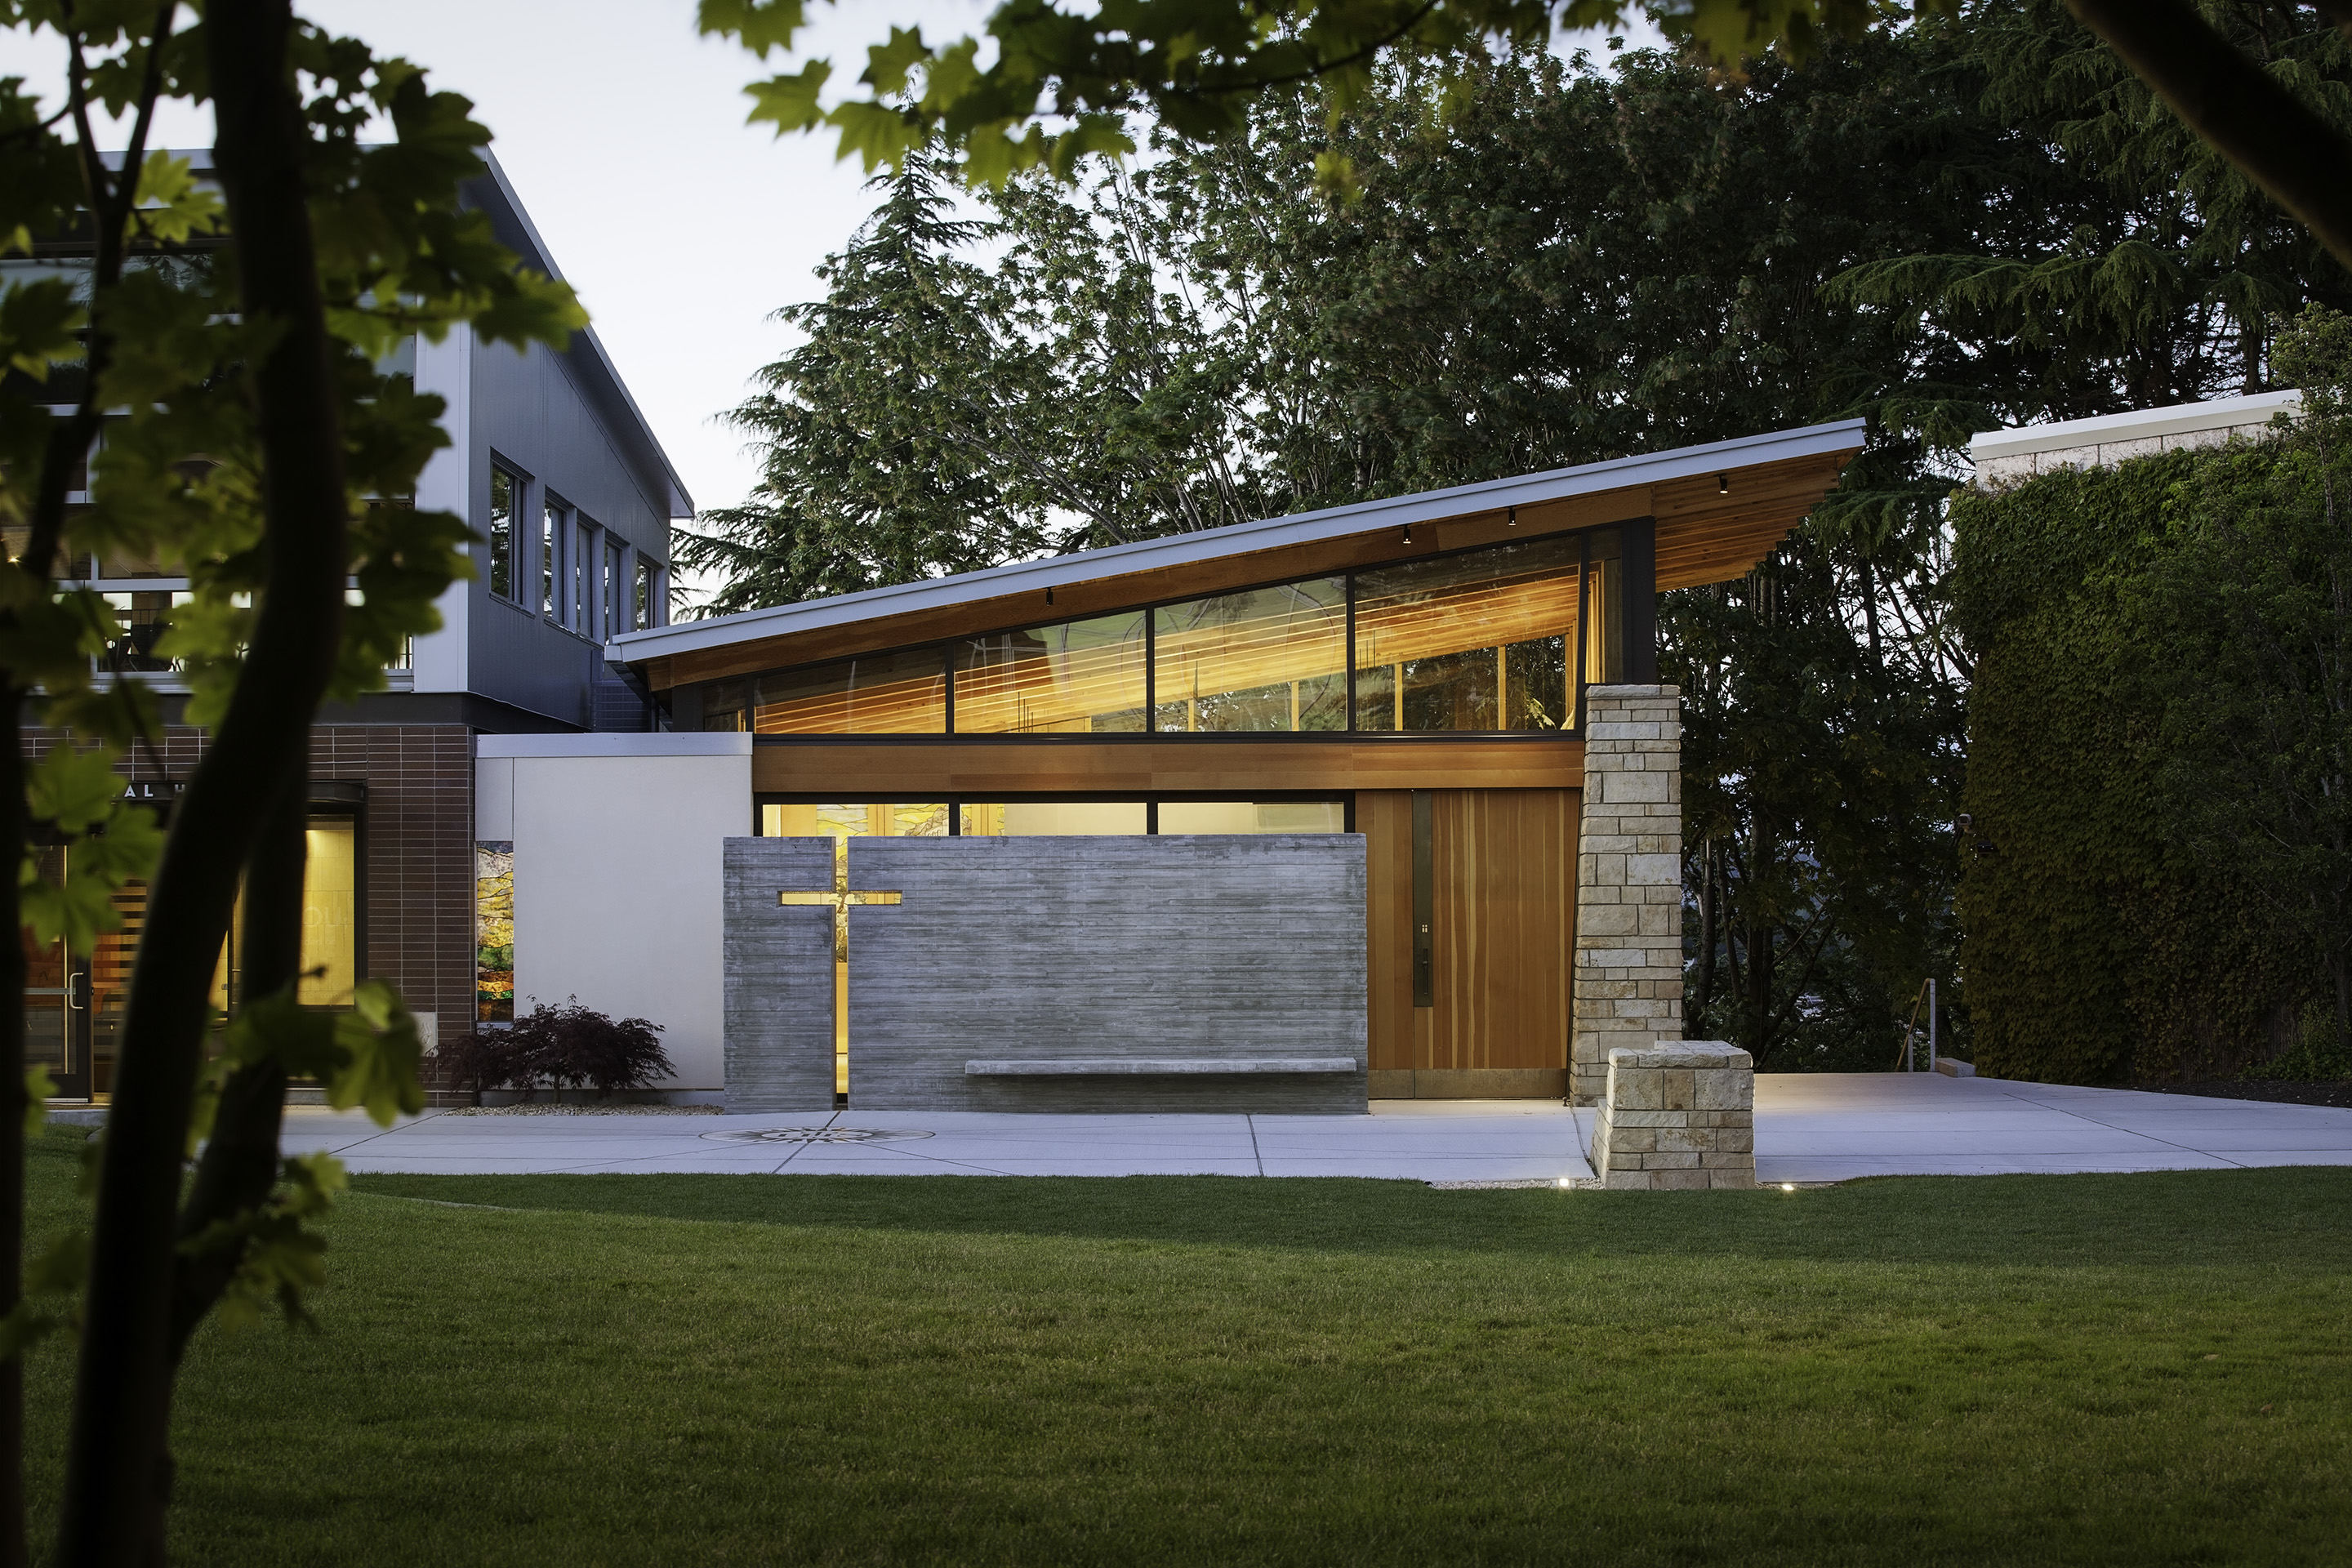 Our Lady of Montserrat Chapel | Hennebery Eddy Architects, Inc